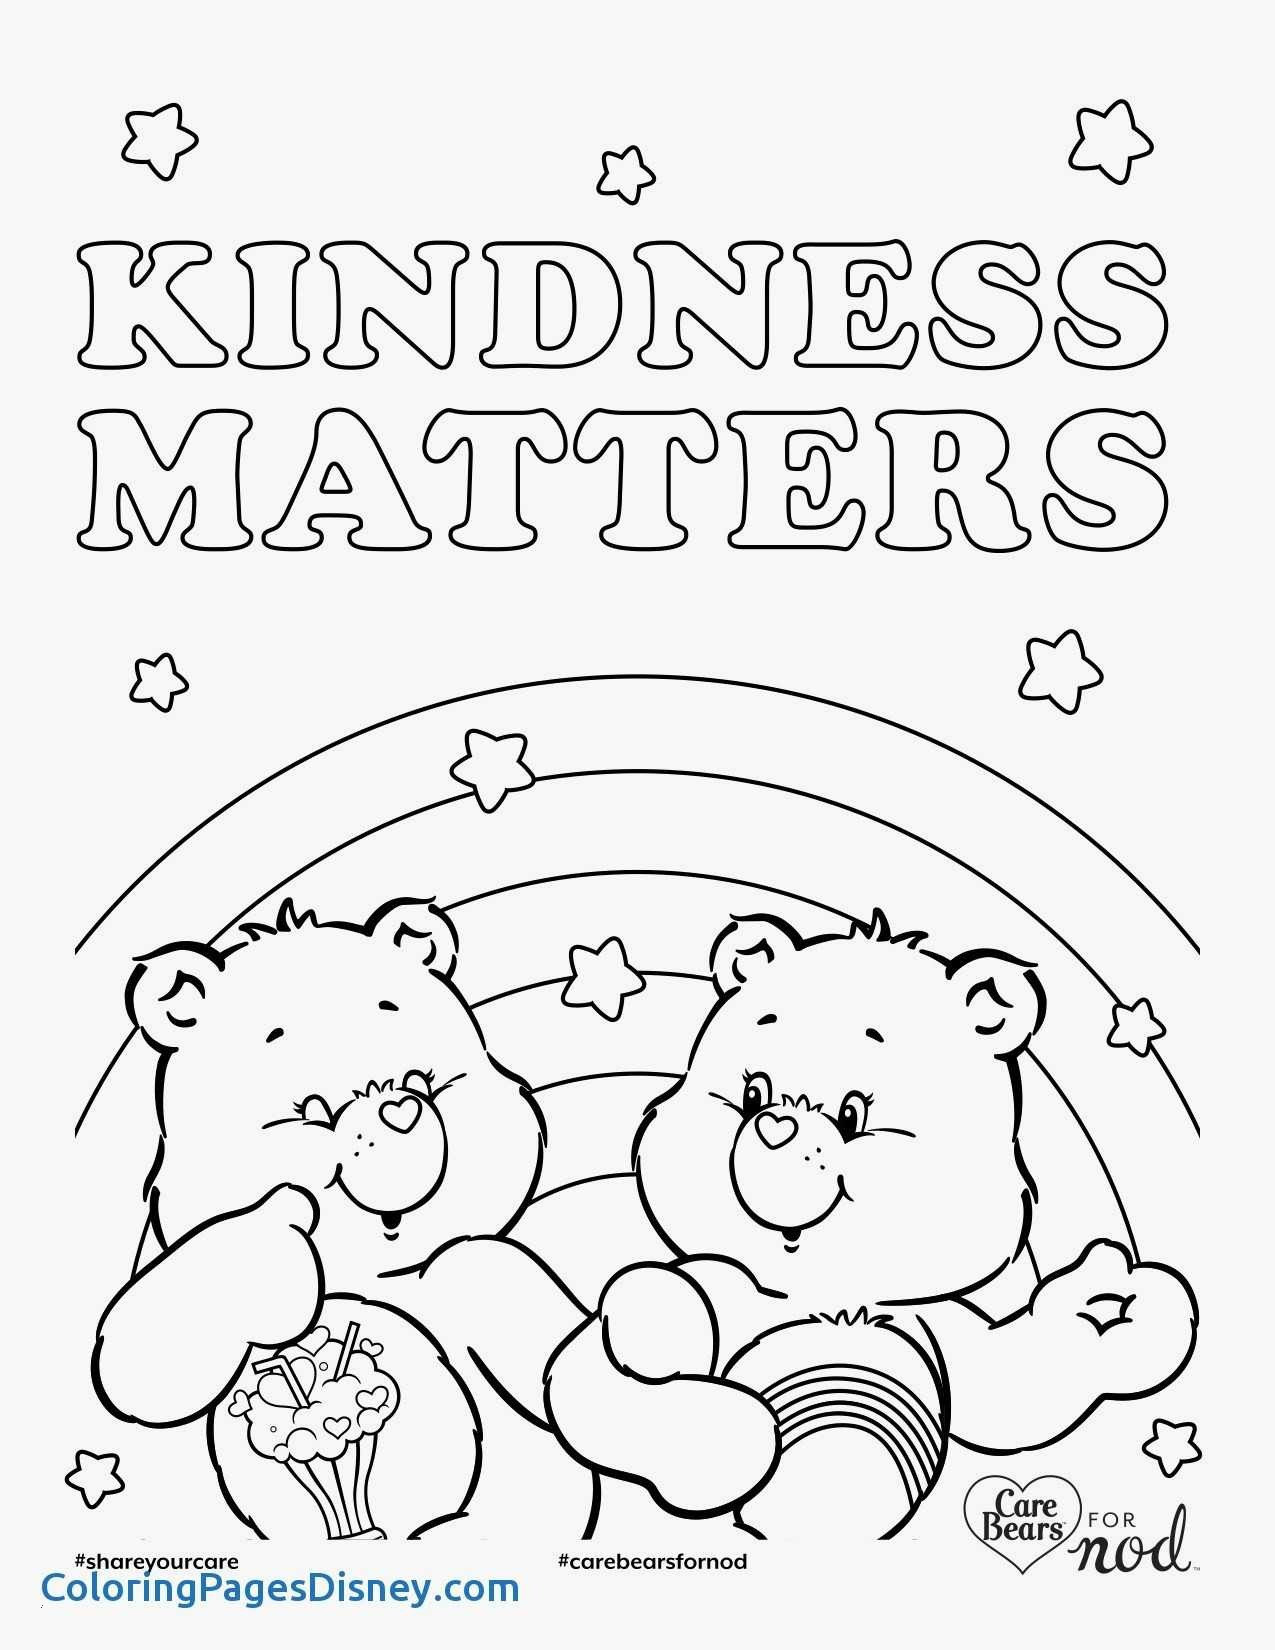 Mia and Me Coloring Pages Neu Ausmalbilder Mia and Me Kostenlos Luxus Pin by Louise Brown Coloring Bilder